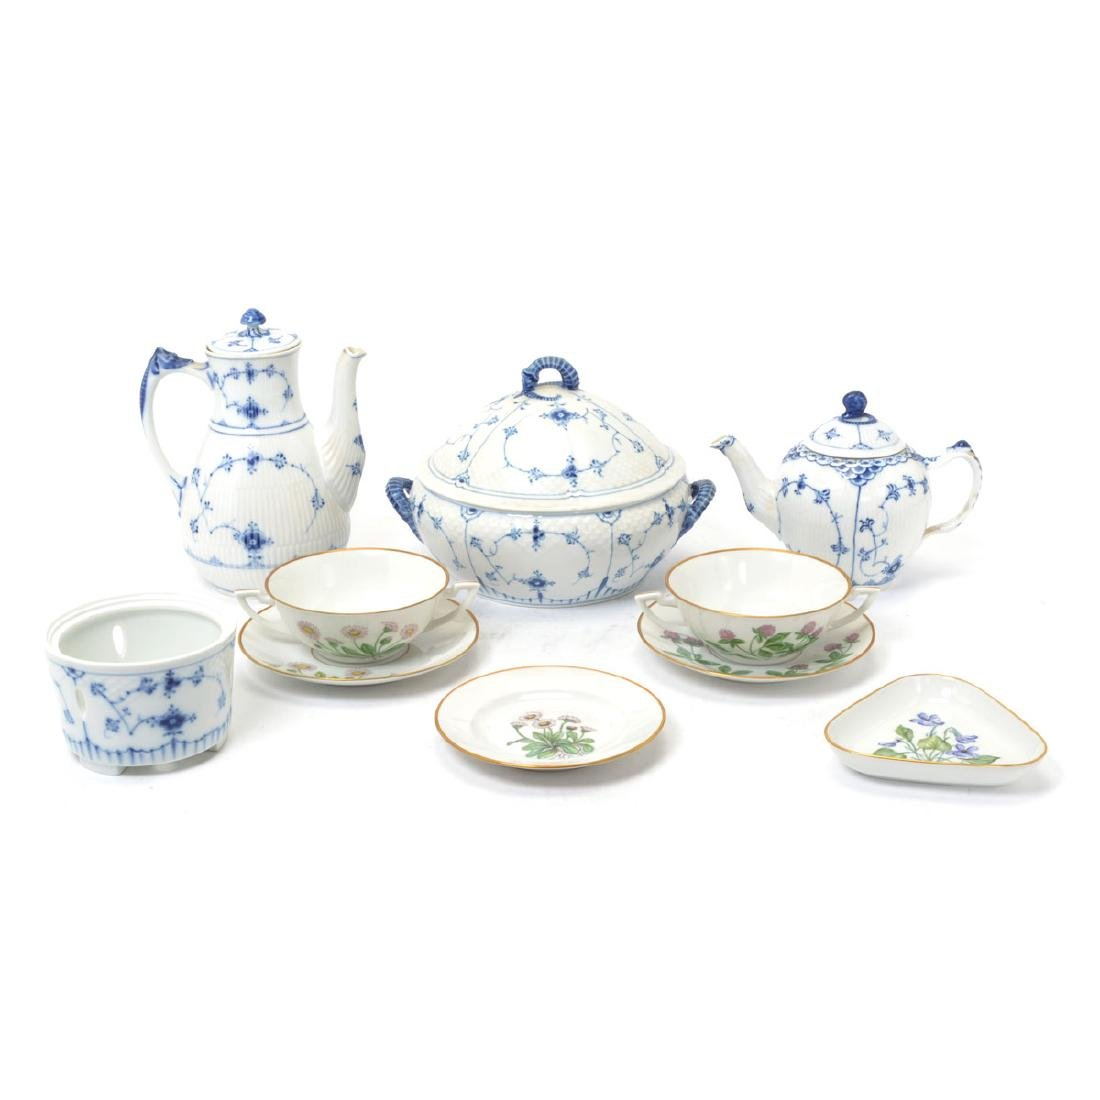 Royal Copenhagen Porcelain Serving and Table Articles